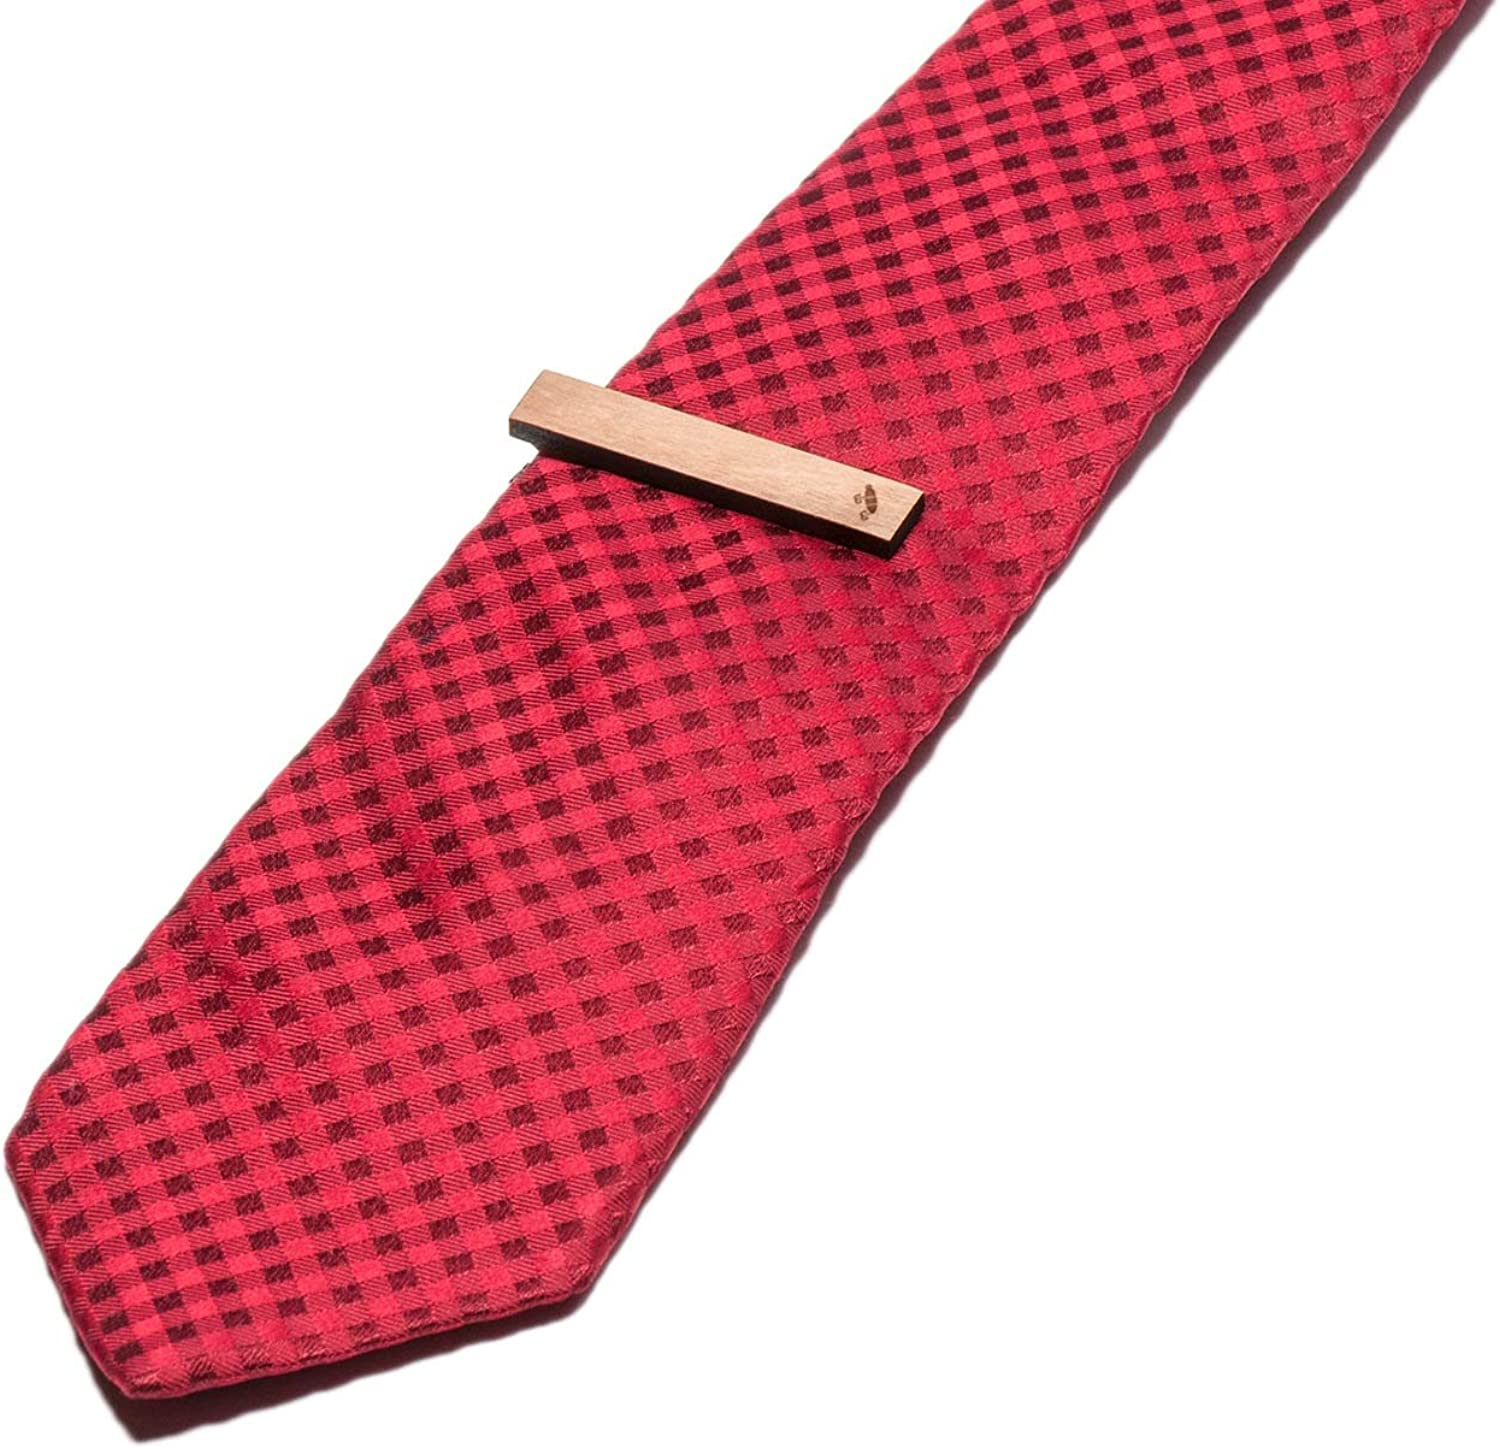 Wooden Accessories Company Wooden Tie Clips with Laser Engraved Fishing Bait Design Cherry Wood Tie Bar Engraved in The USA